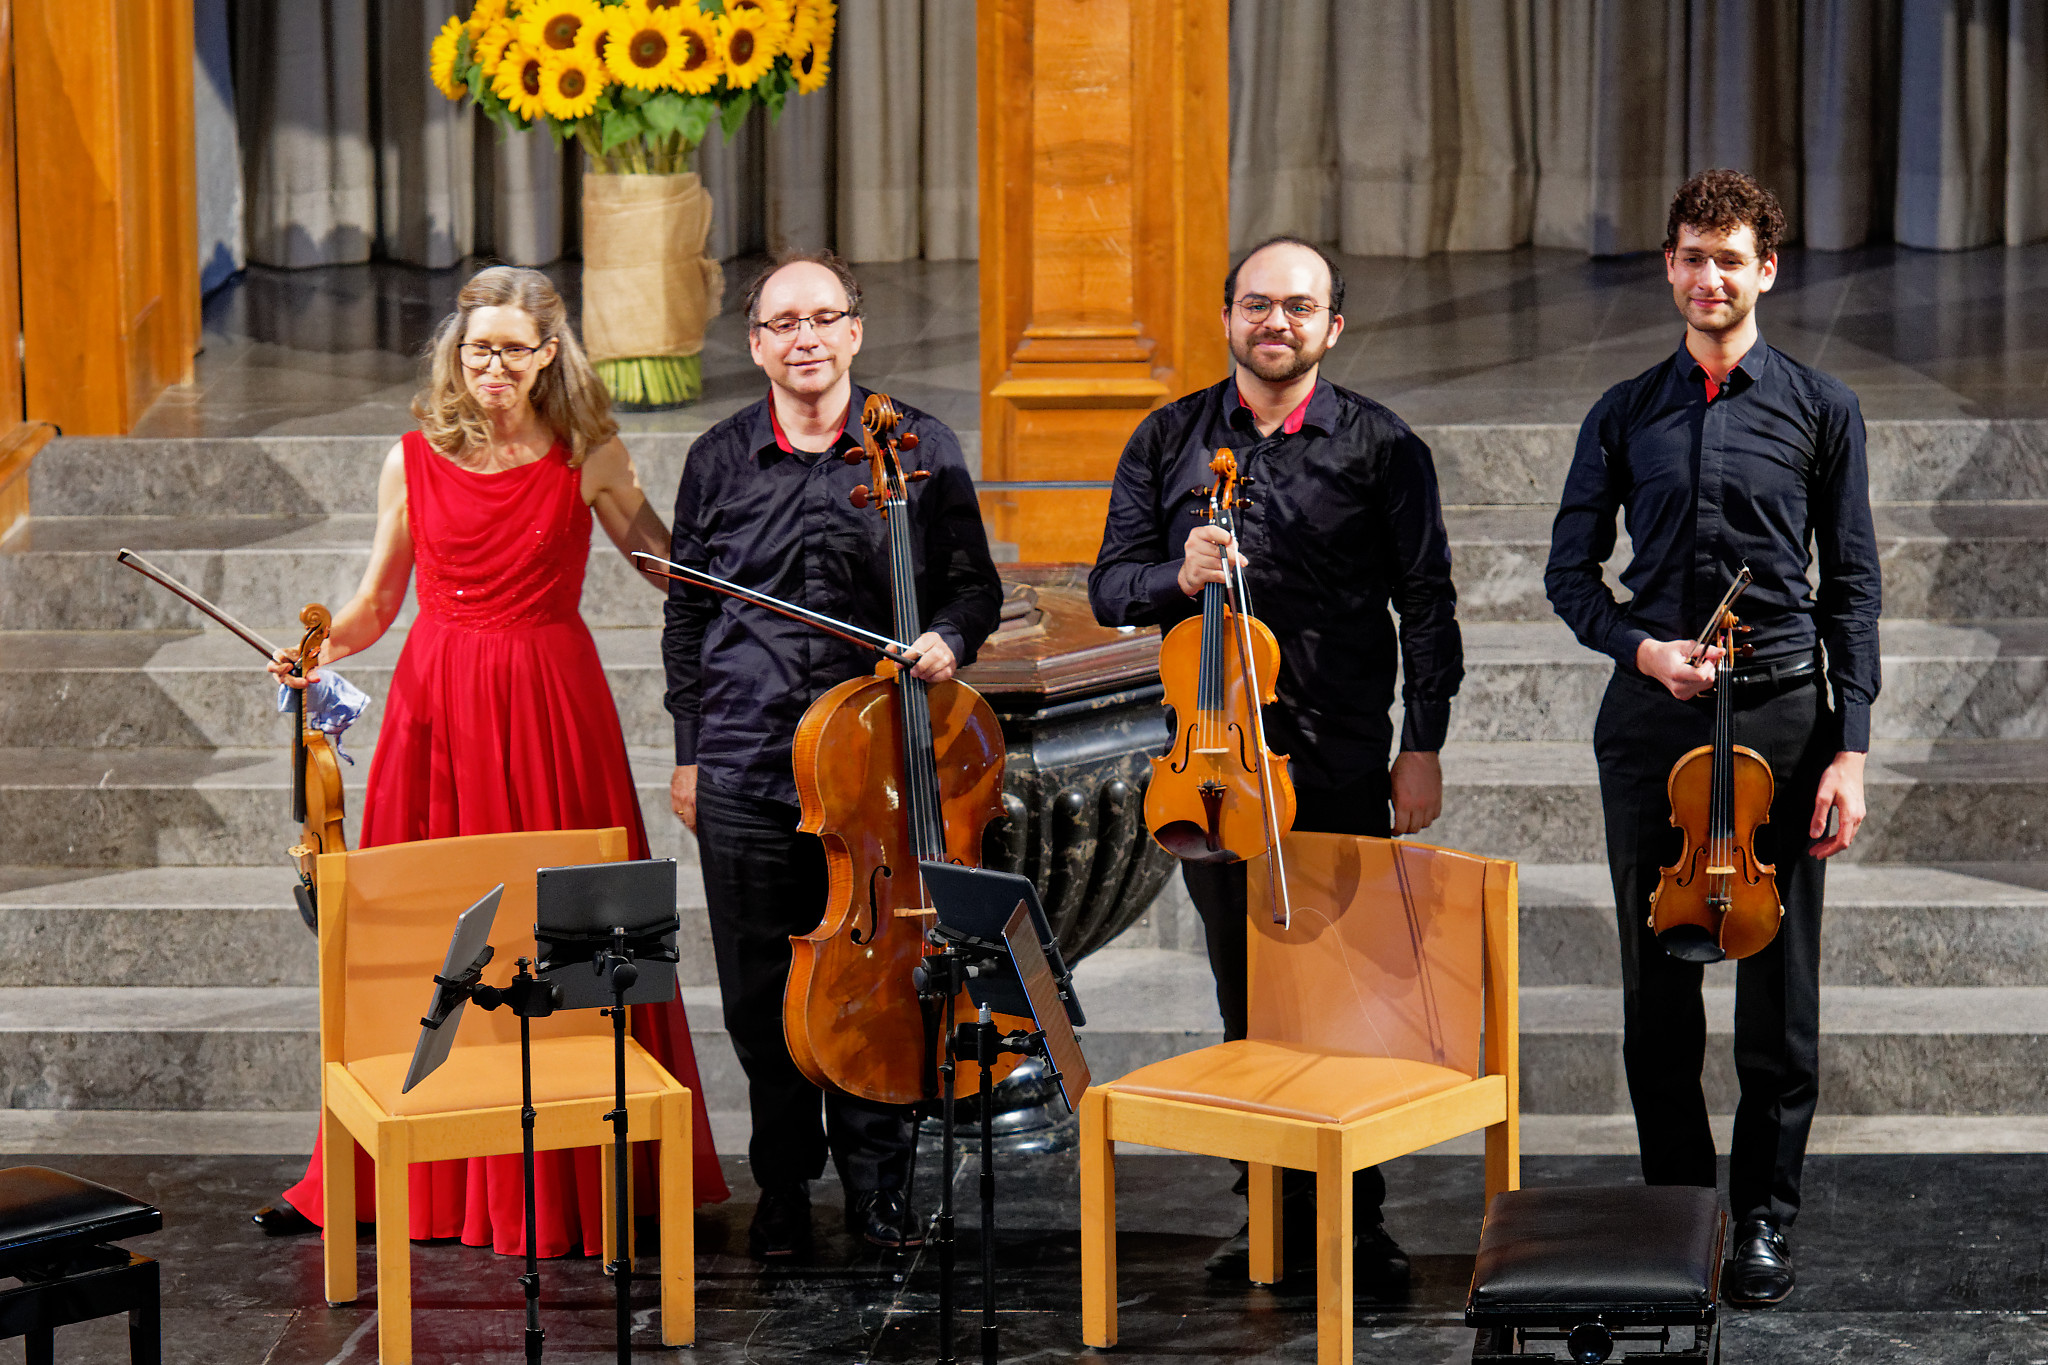 Merel Quartet, Kirche St.Peter, Zurich, 2019-09-22 (© Rolf Kyburz, all rights reserved)